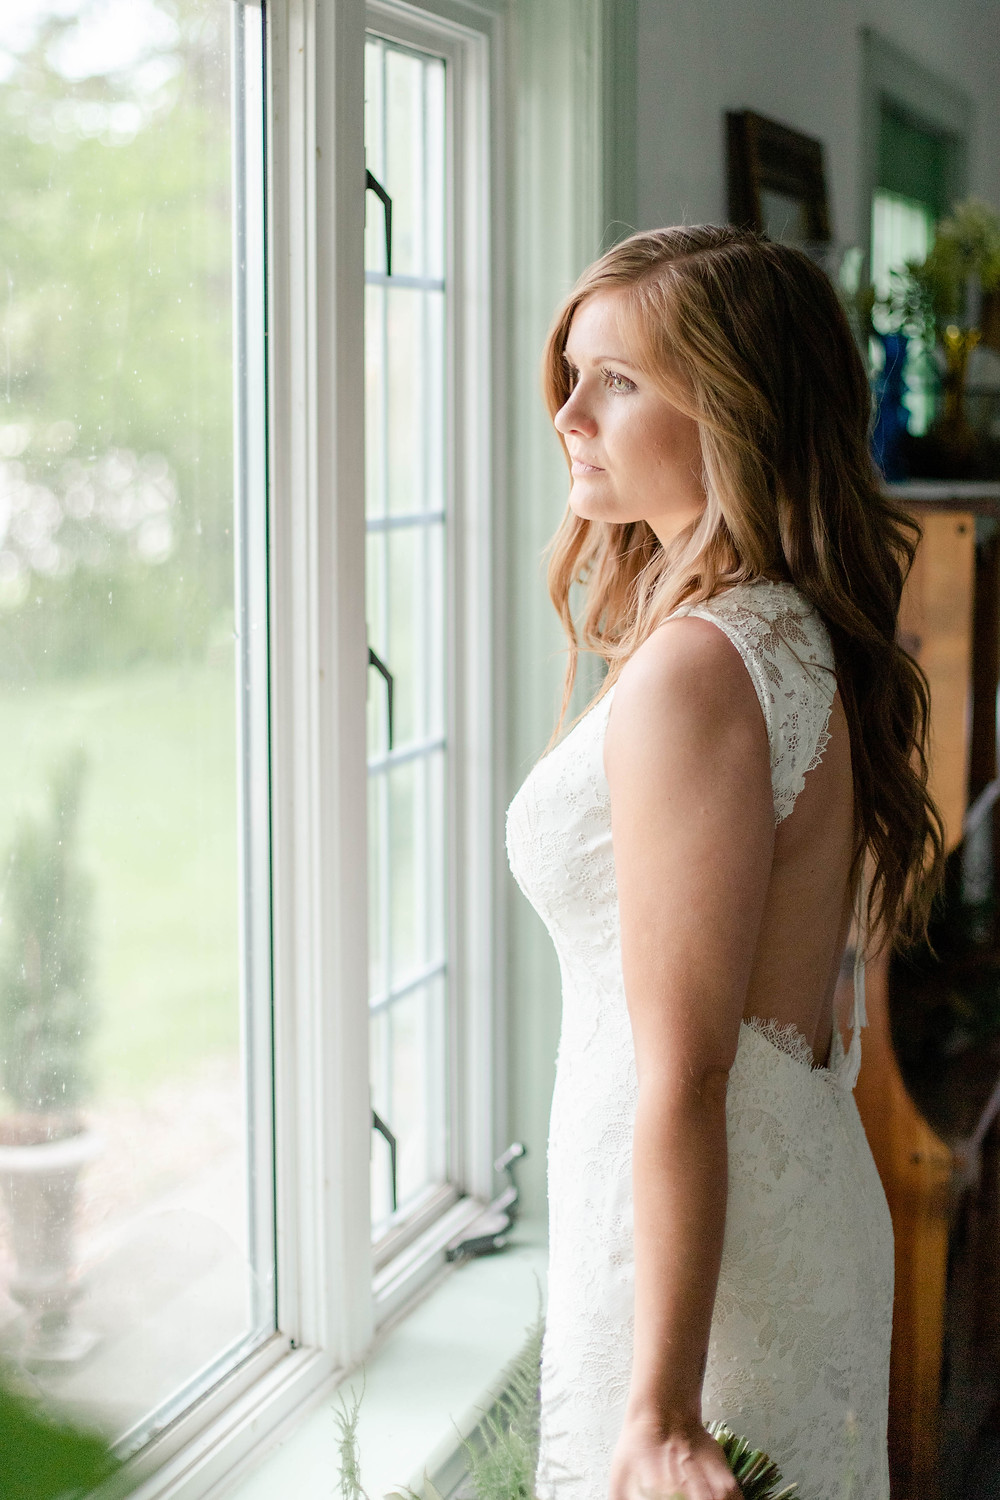 bride looking out window indoor ceremony in the details byron center truer design